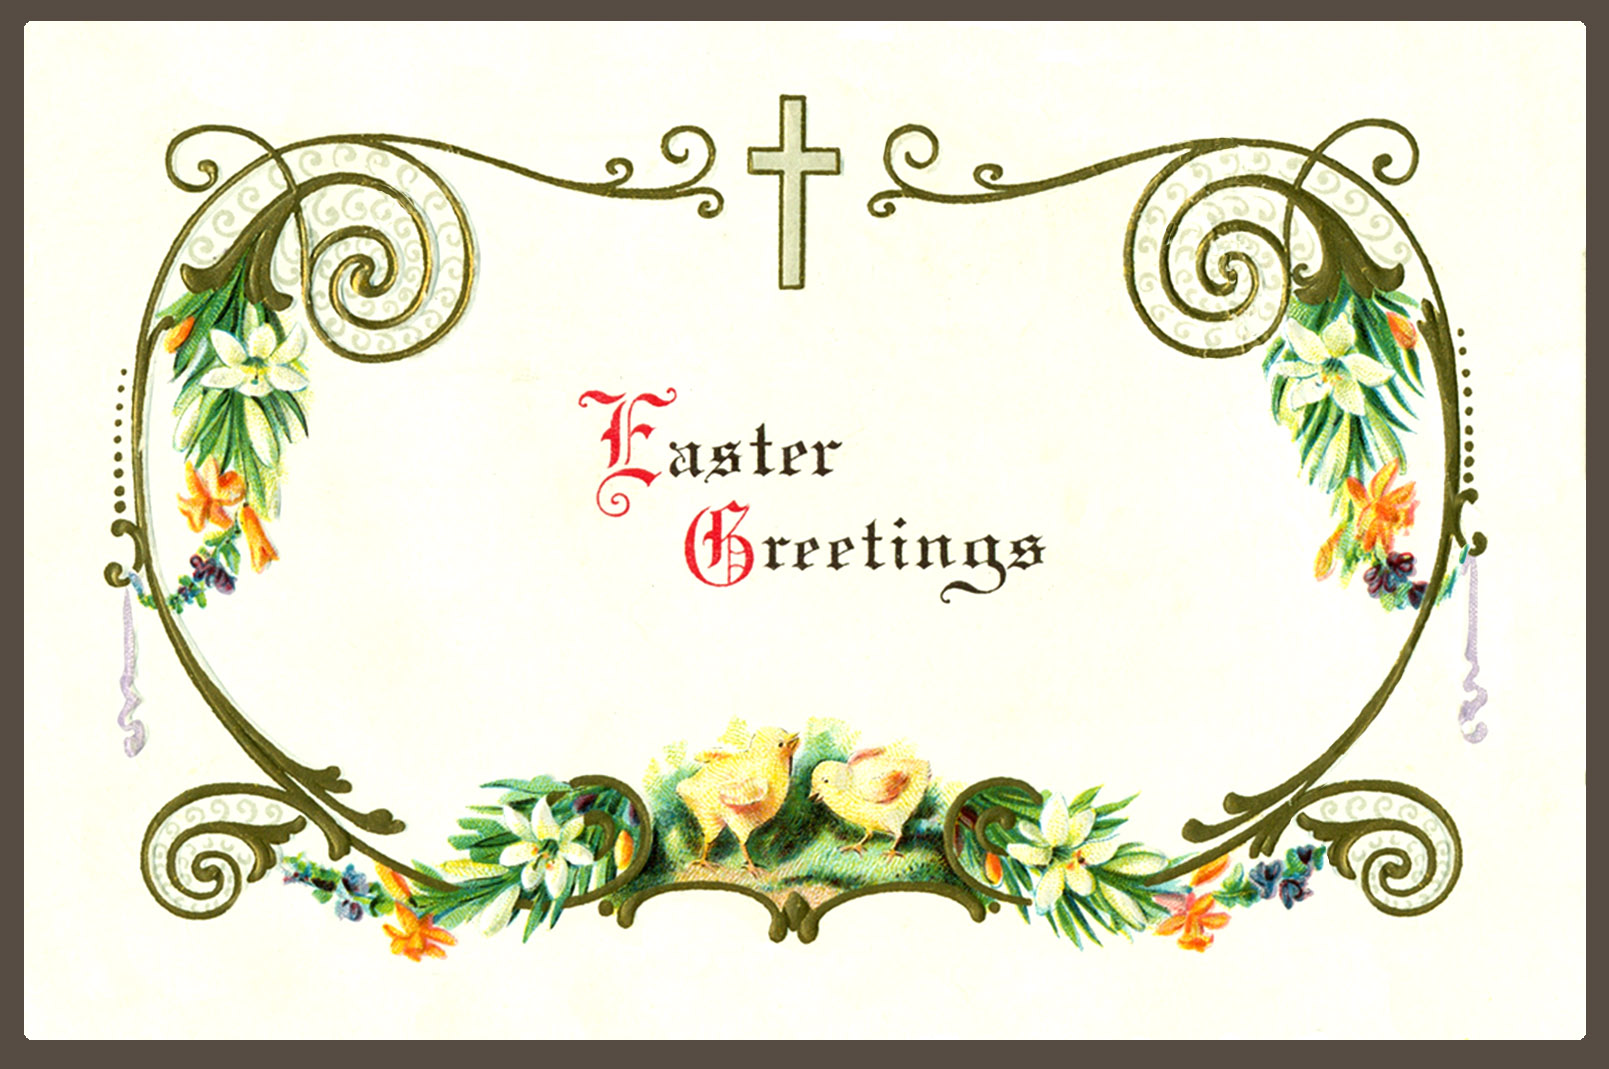 Easter greeting with cross and flowers and chickens-small